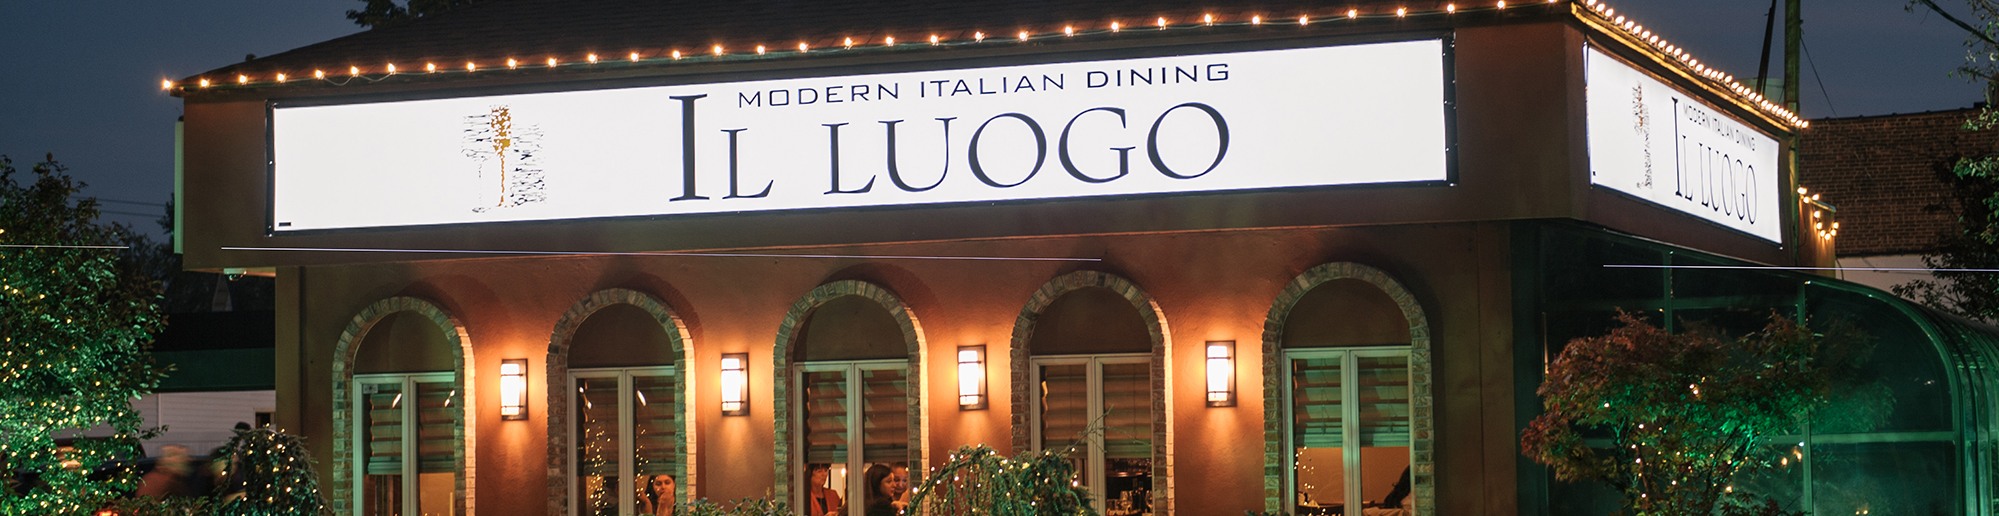 Picture of outside of restaurant